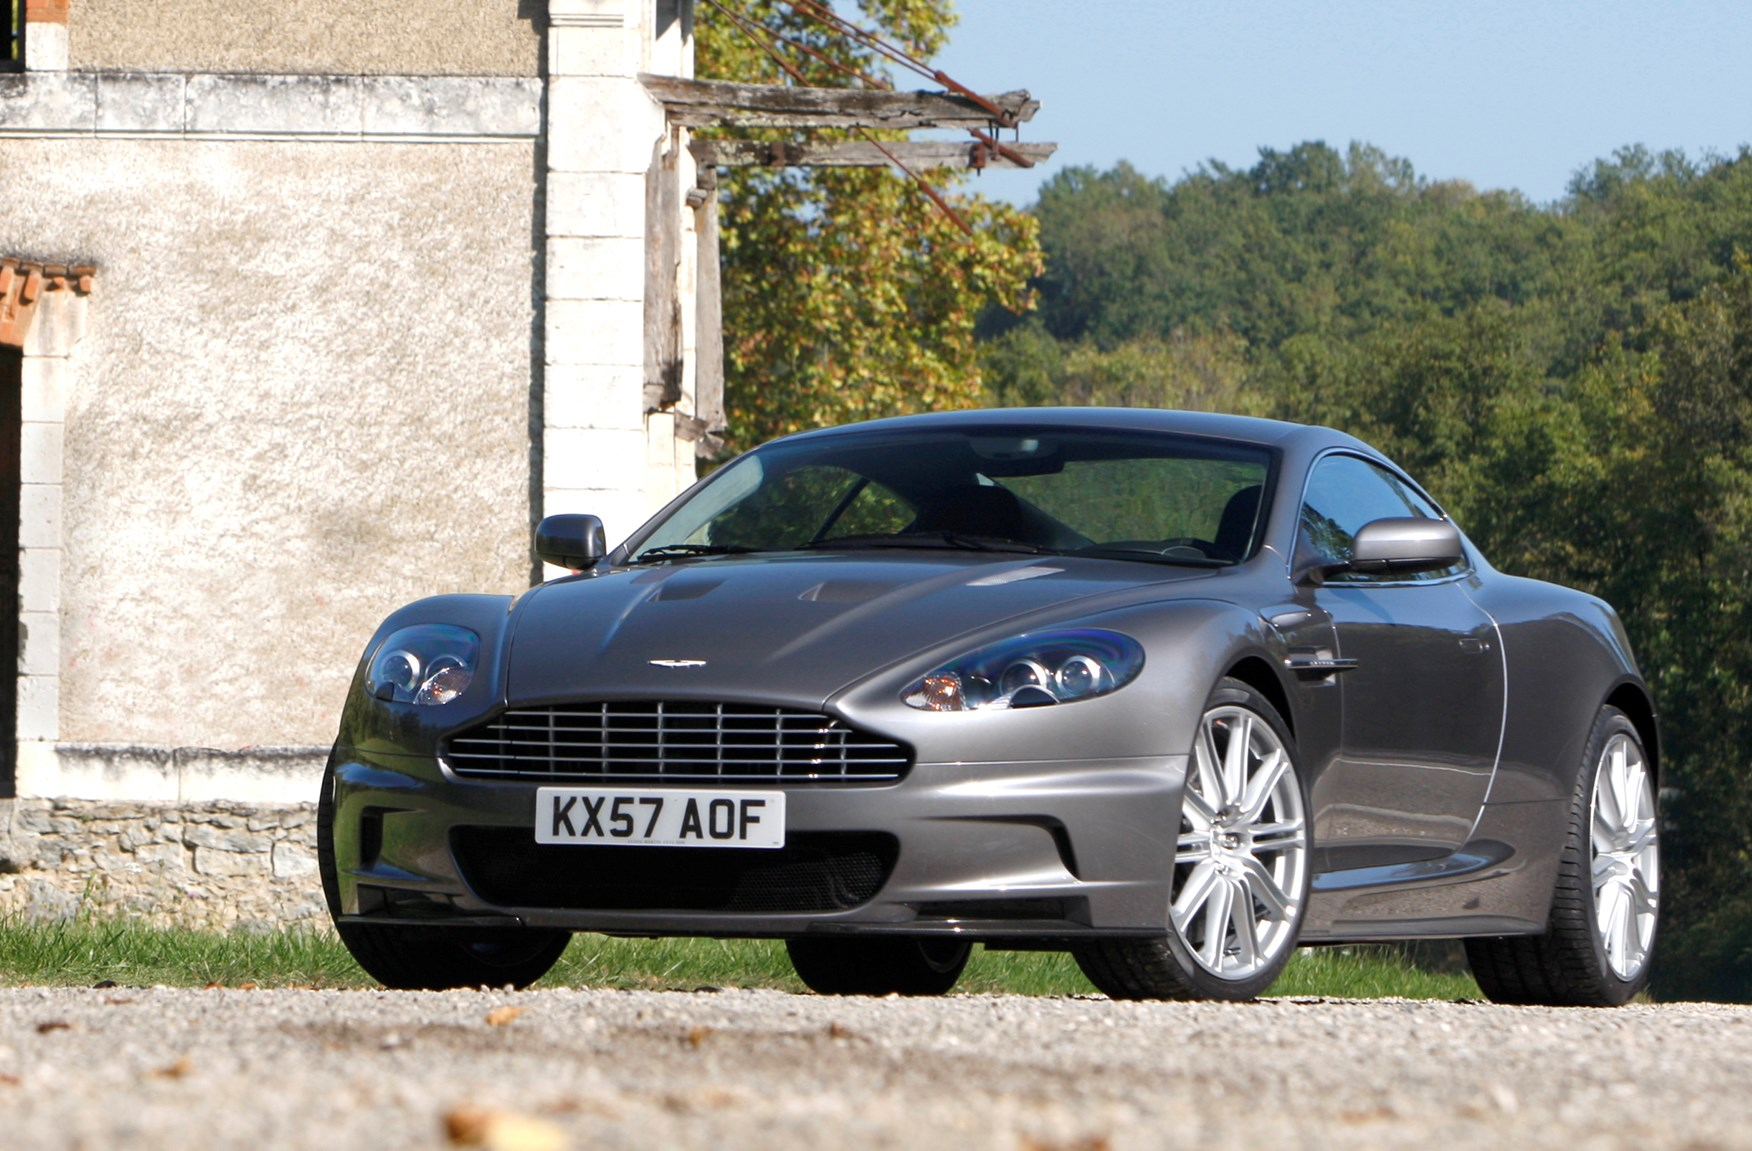 Aston Martin DBS Coupe Review (2008 - 2012)